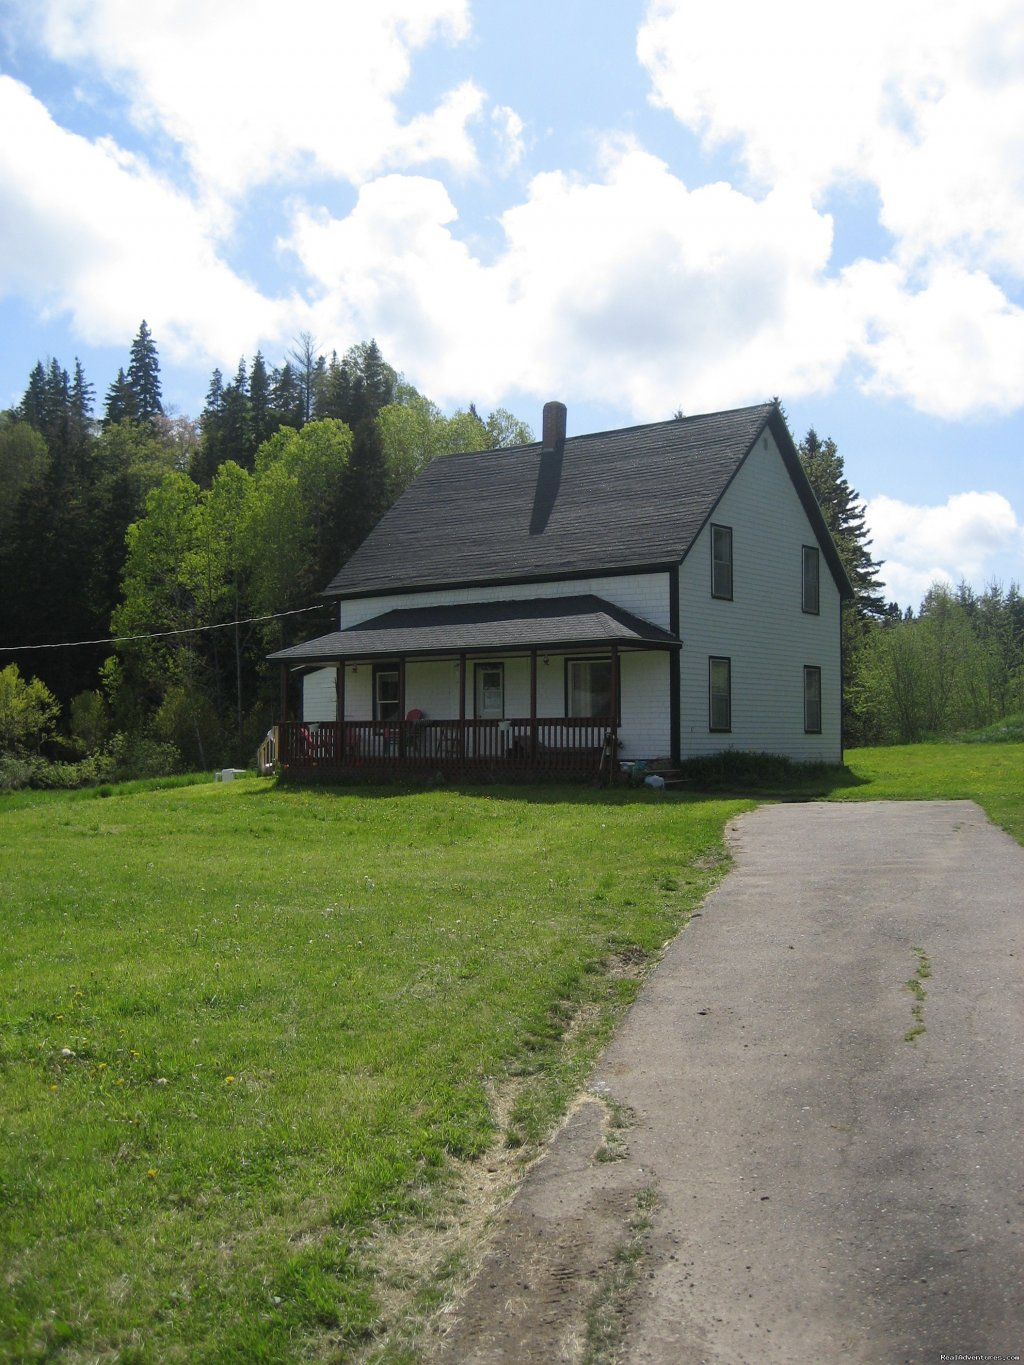 100 year old farmhouse with large kitchen, living room, dinning room, 4 bedrooms, 1 bathroom. Sits on 200 acres of land. Fish on the Margaree River. Ammentities nearby: Cabot Links golf course ,beaches, water falls, Celtic music and culture.